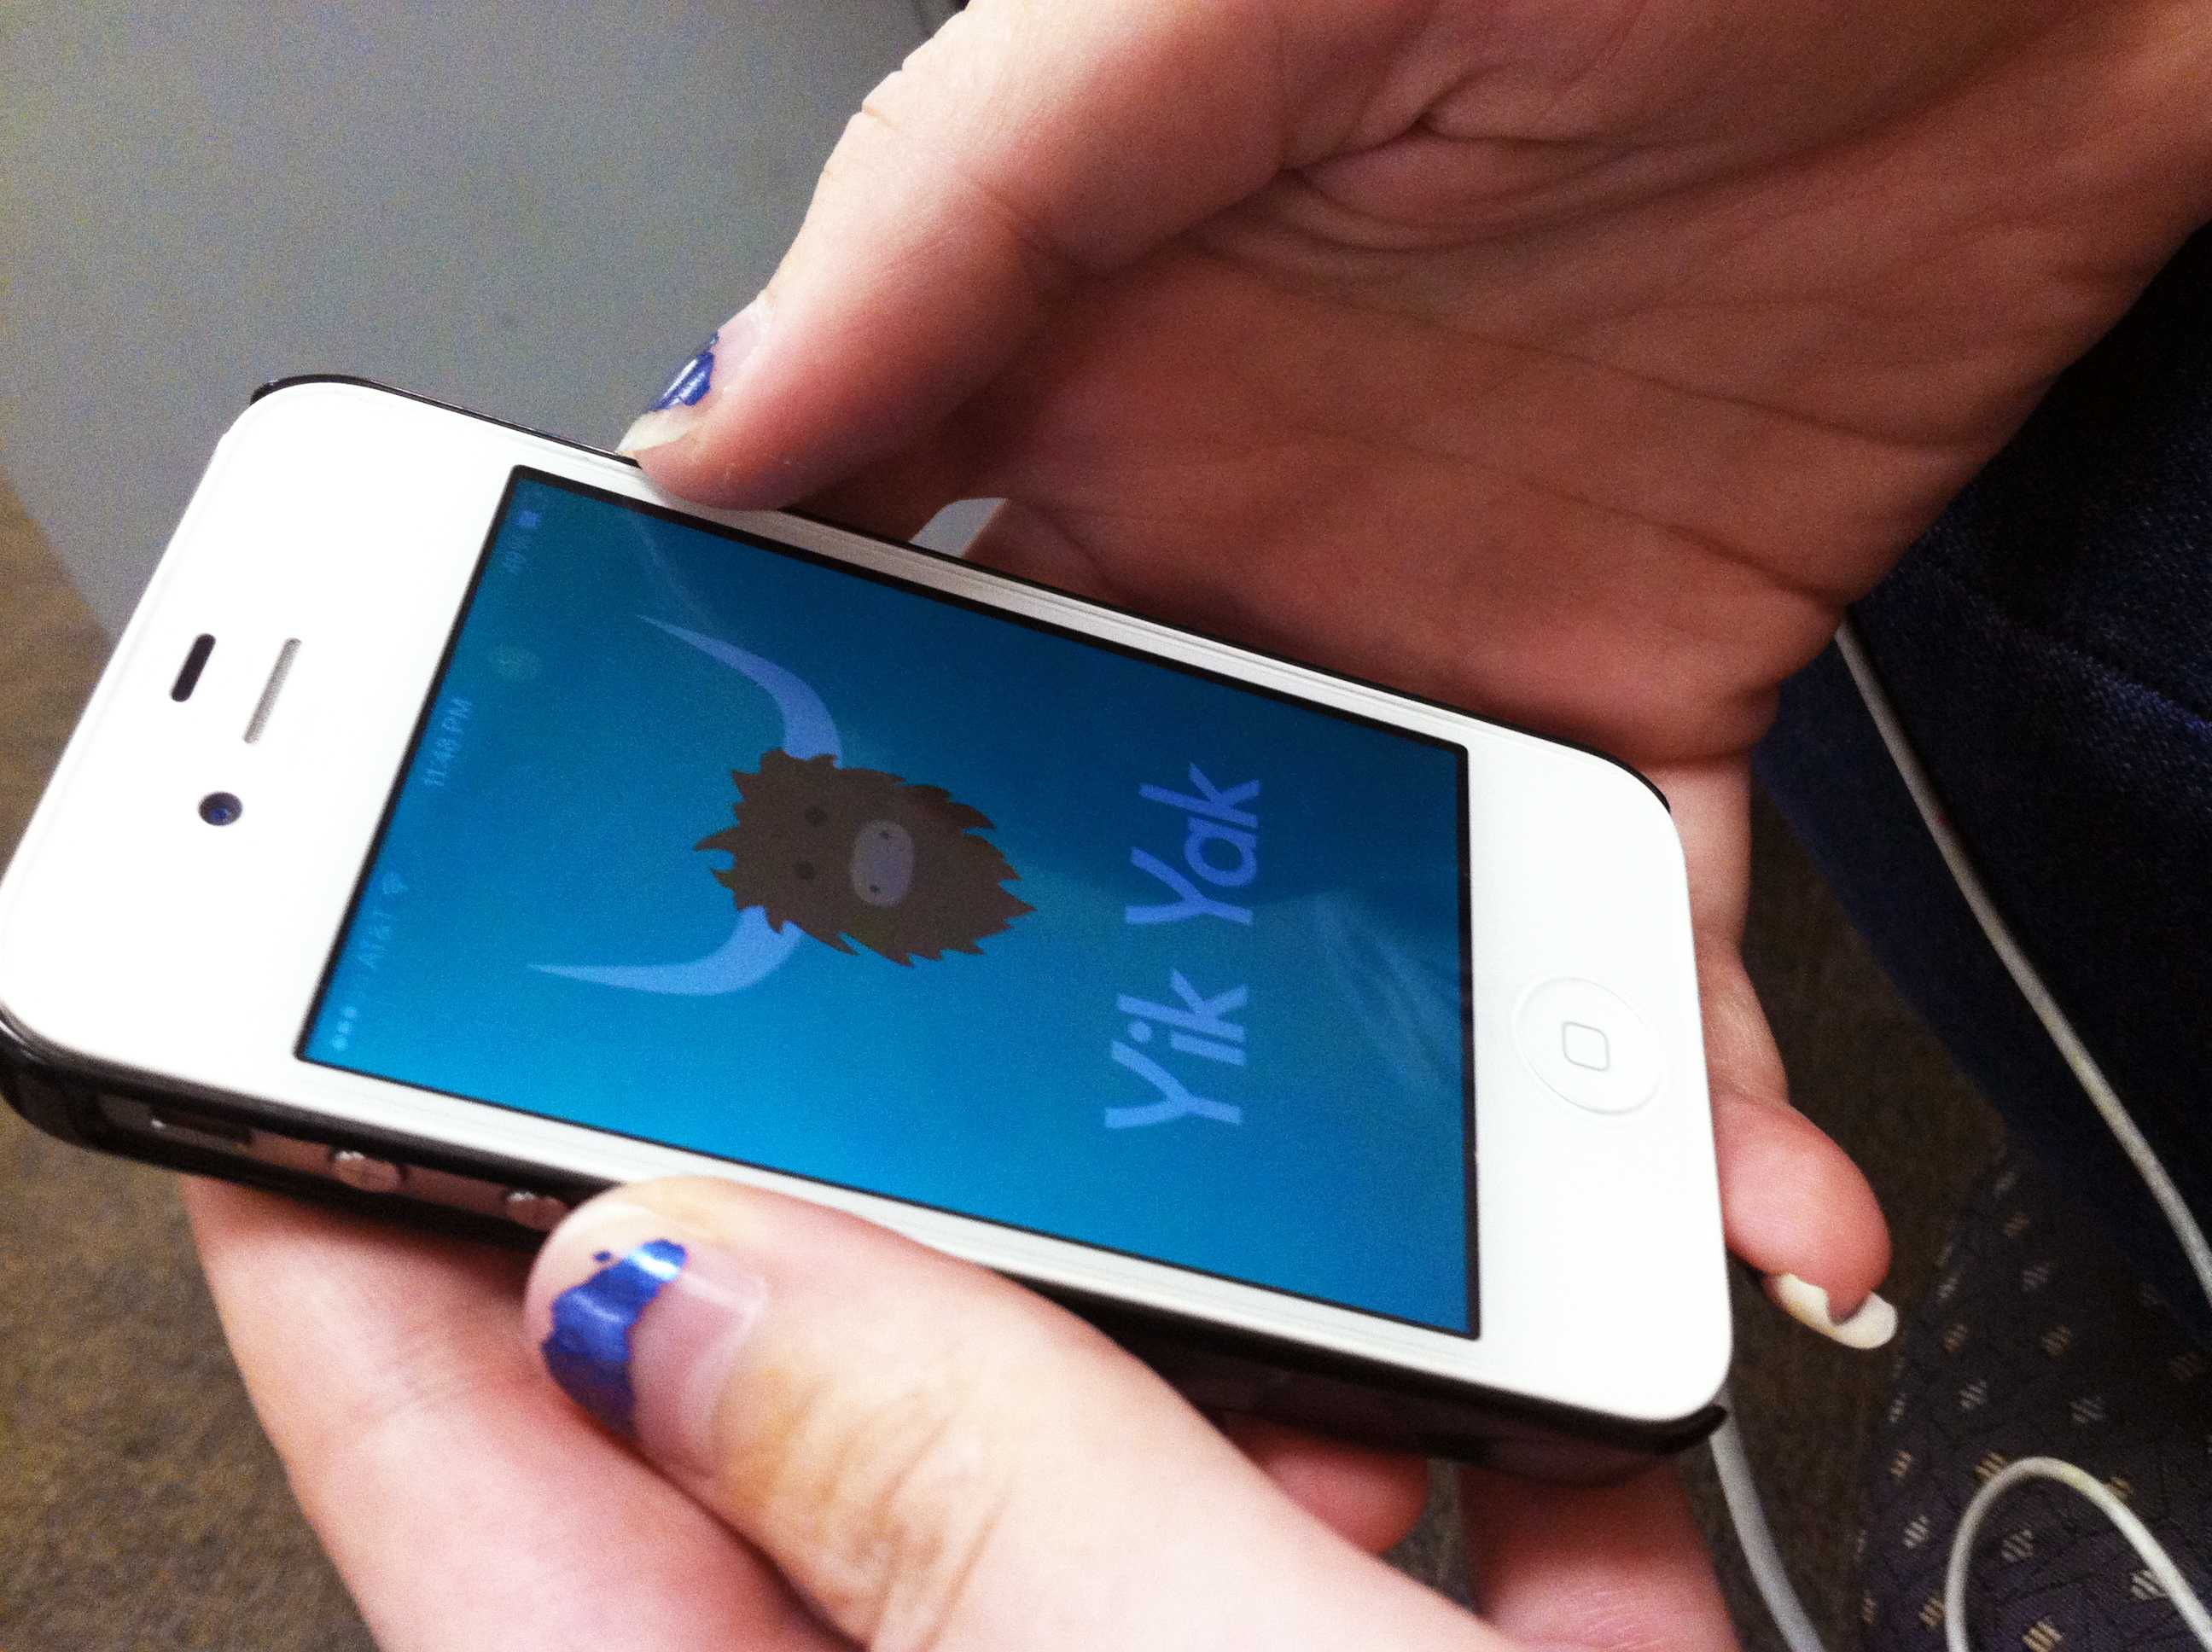 The Yik Yak app, an anonymous social media app similar to Twitter, attracted attention after a student at Pennsylvania State University was arrested for making a threatening comment.